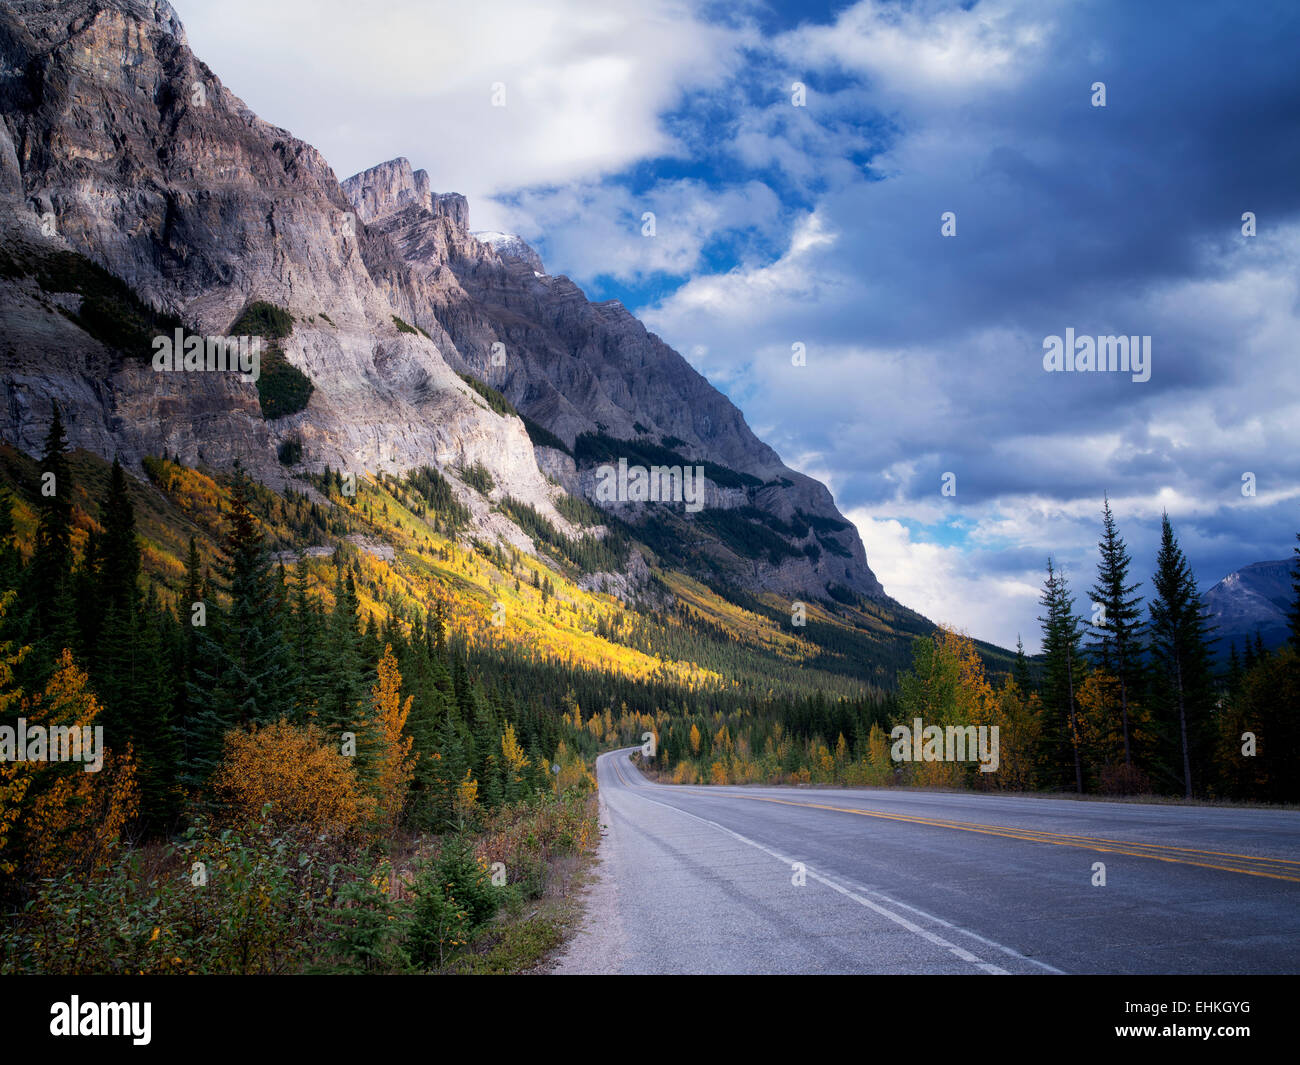 Mountainside with fall colored aspen trees and road. Banff National Park, Alberta, Canada - Stock Image